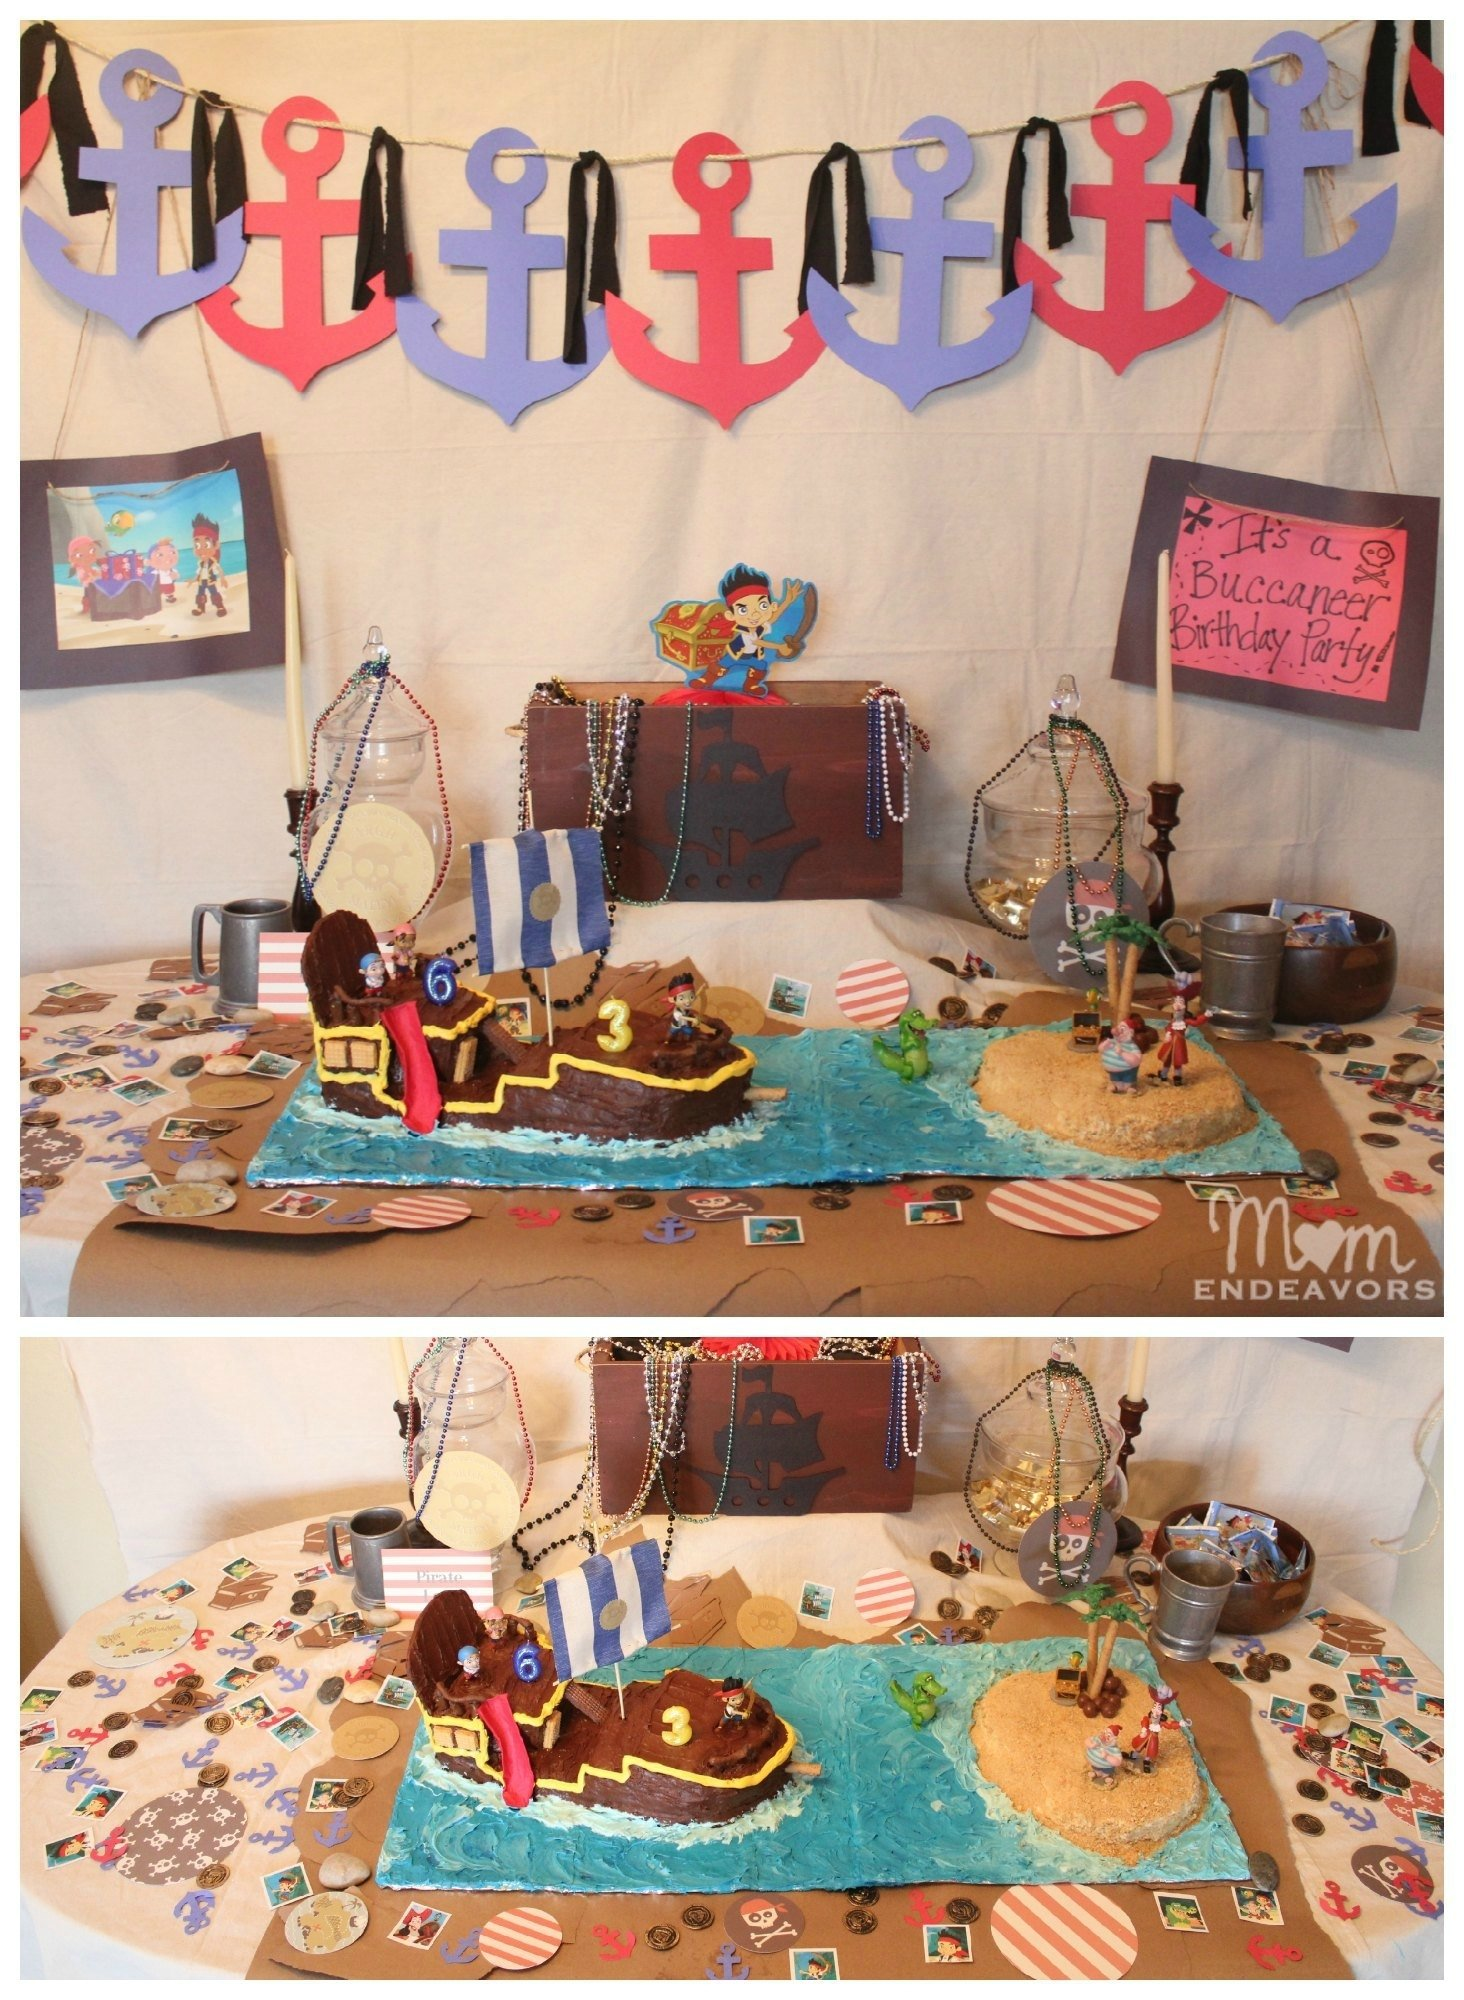 10 Lovable Jake And The Neverland Pirates Decoration Ideas jake and the never land pirates birthday party 8 2020